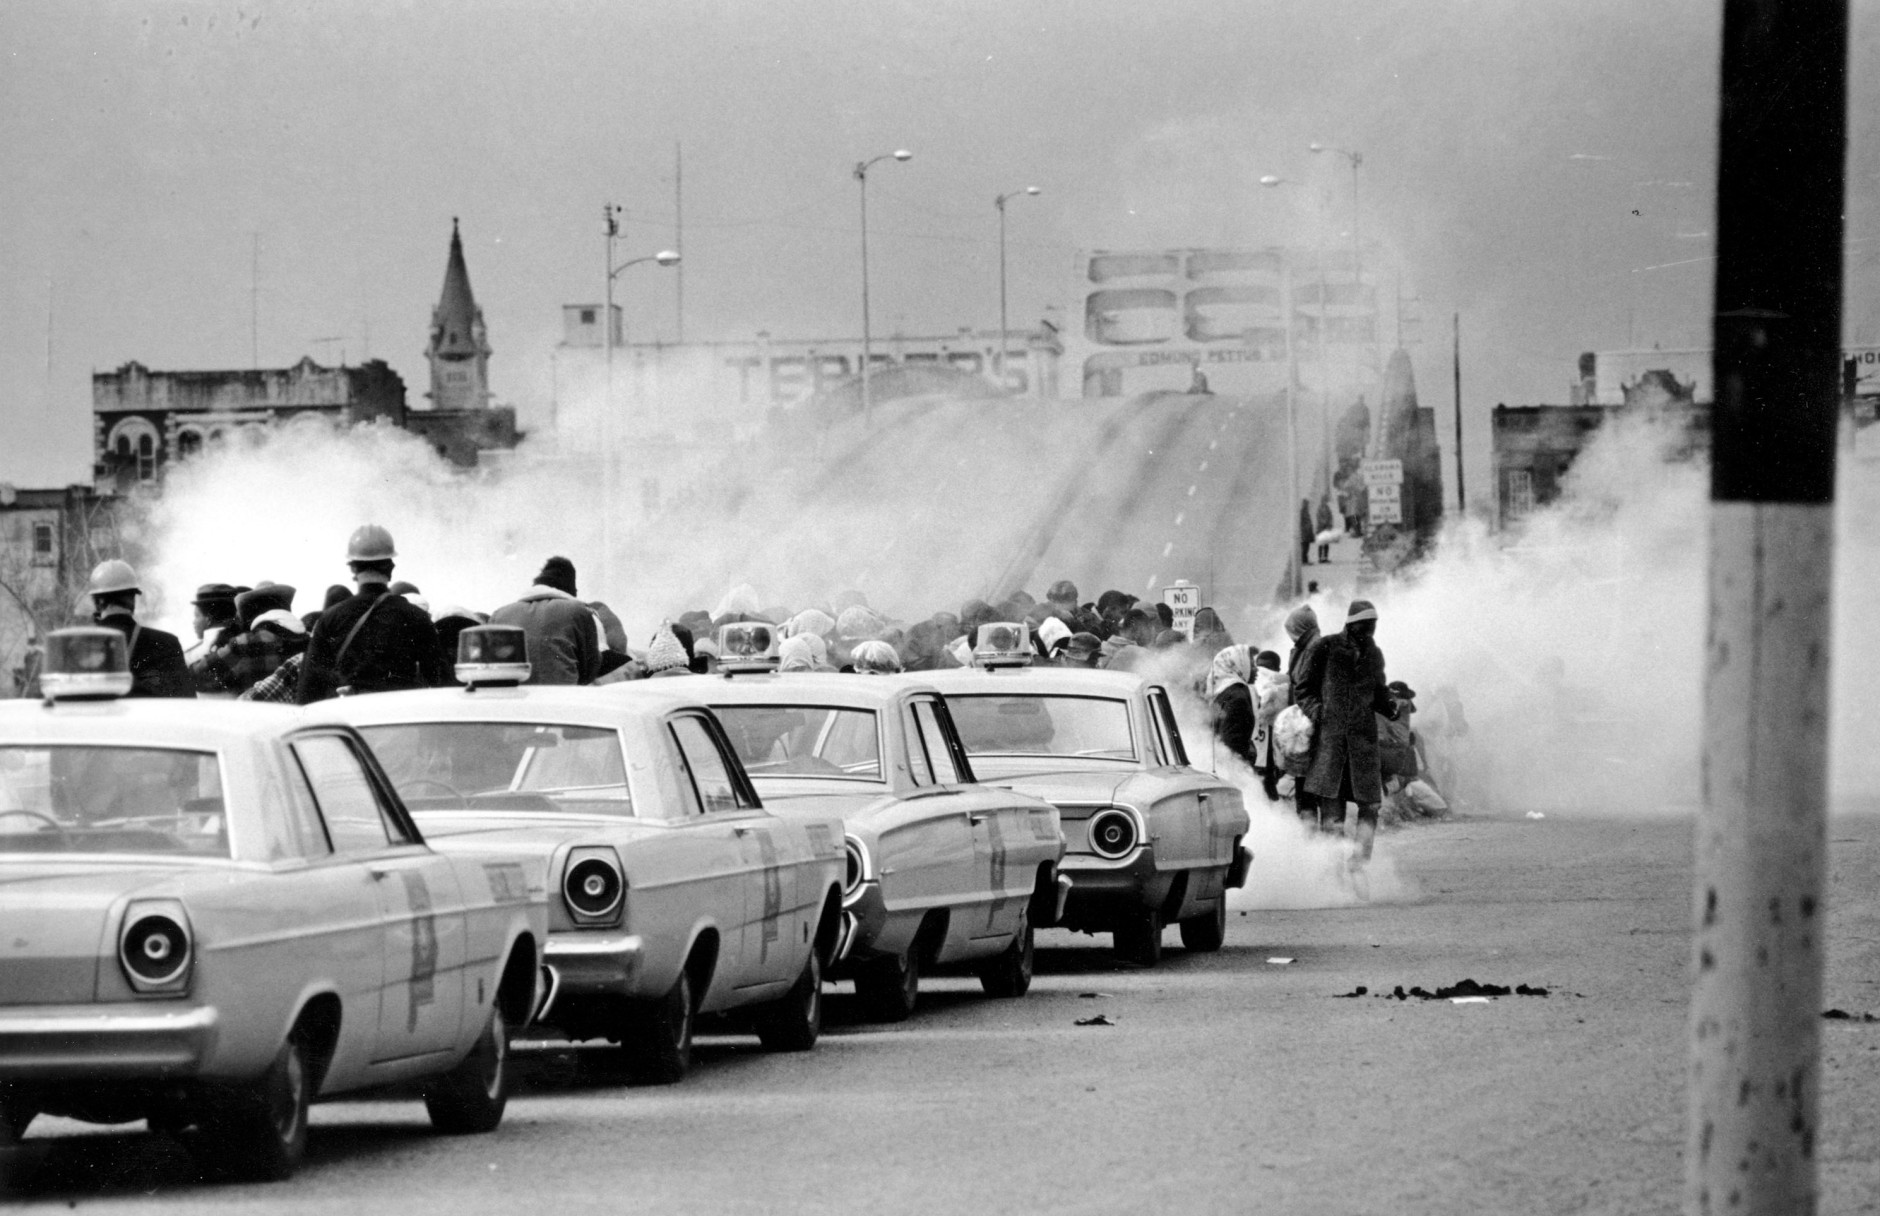 """FILE - In this March 7, 1965 file photo, clouds of tear gas fill the air as state troopers, ordered by Gov. George Wallace, break up a demonstration march in Selma, Ala., on what became known as """"Bloody Sunday."""" The incident is widely credited for galvanizing the nation's leaders and ultimately yielded passage of the Voting Rights Act of 1965. (AP Photo/File)"""